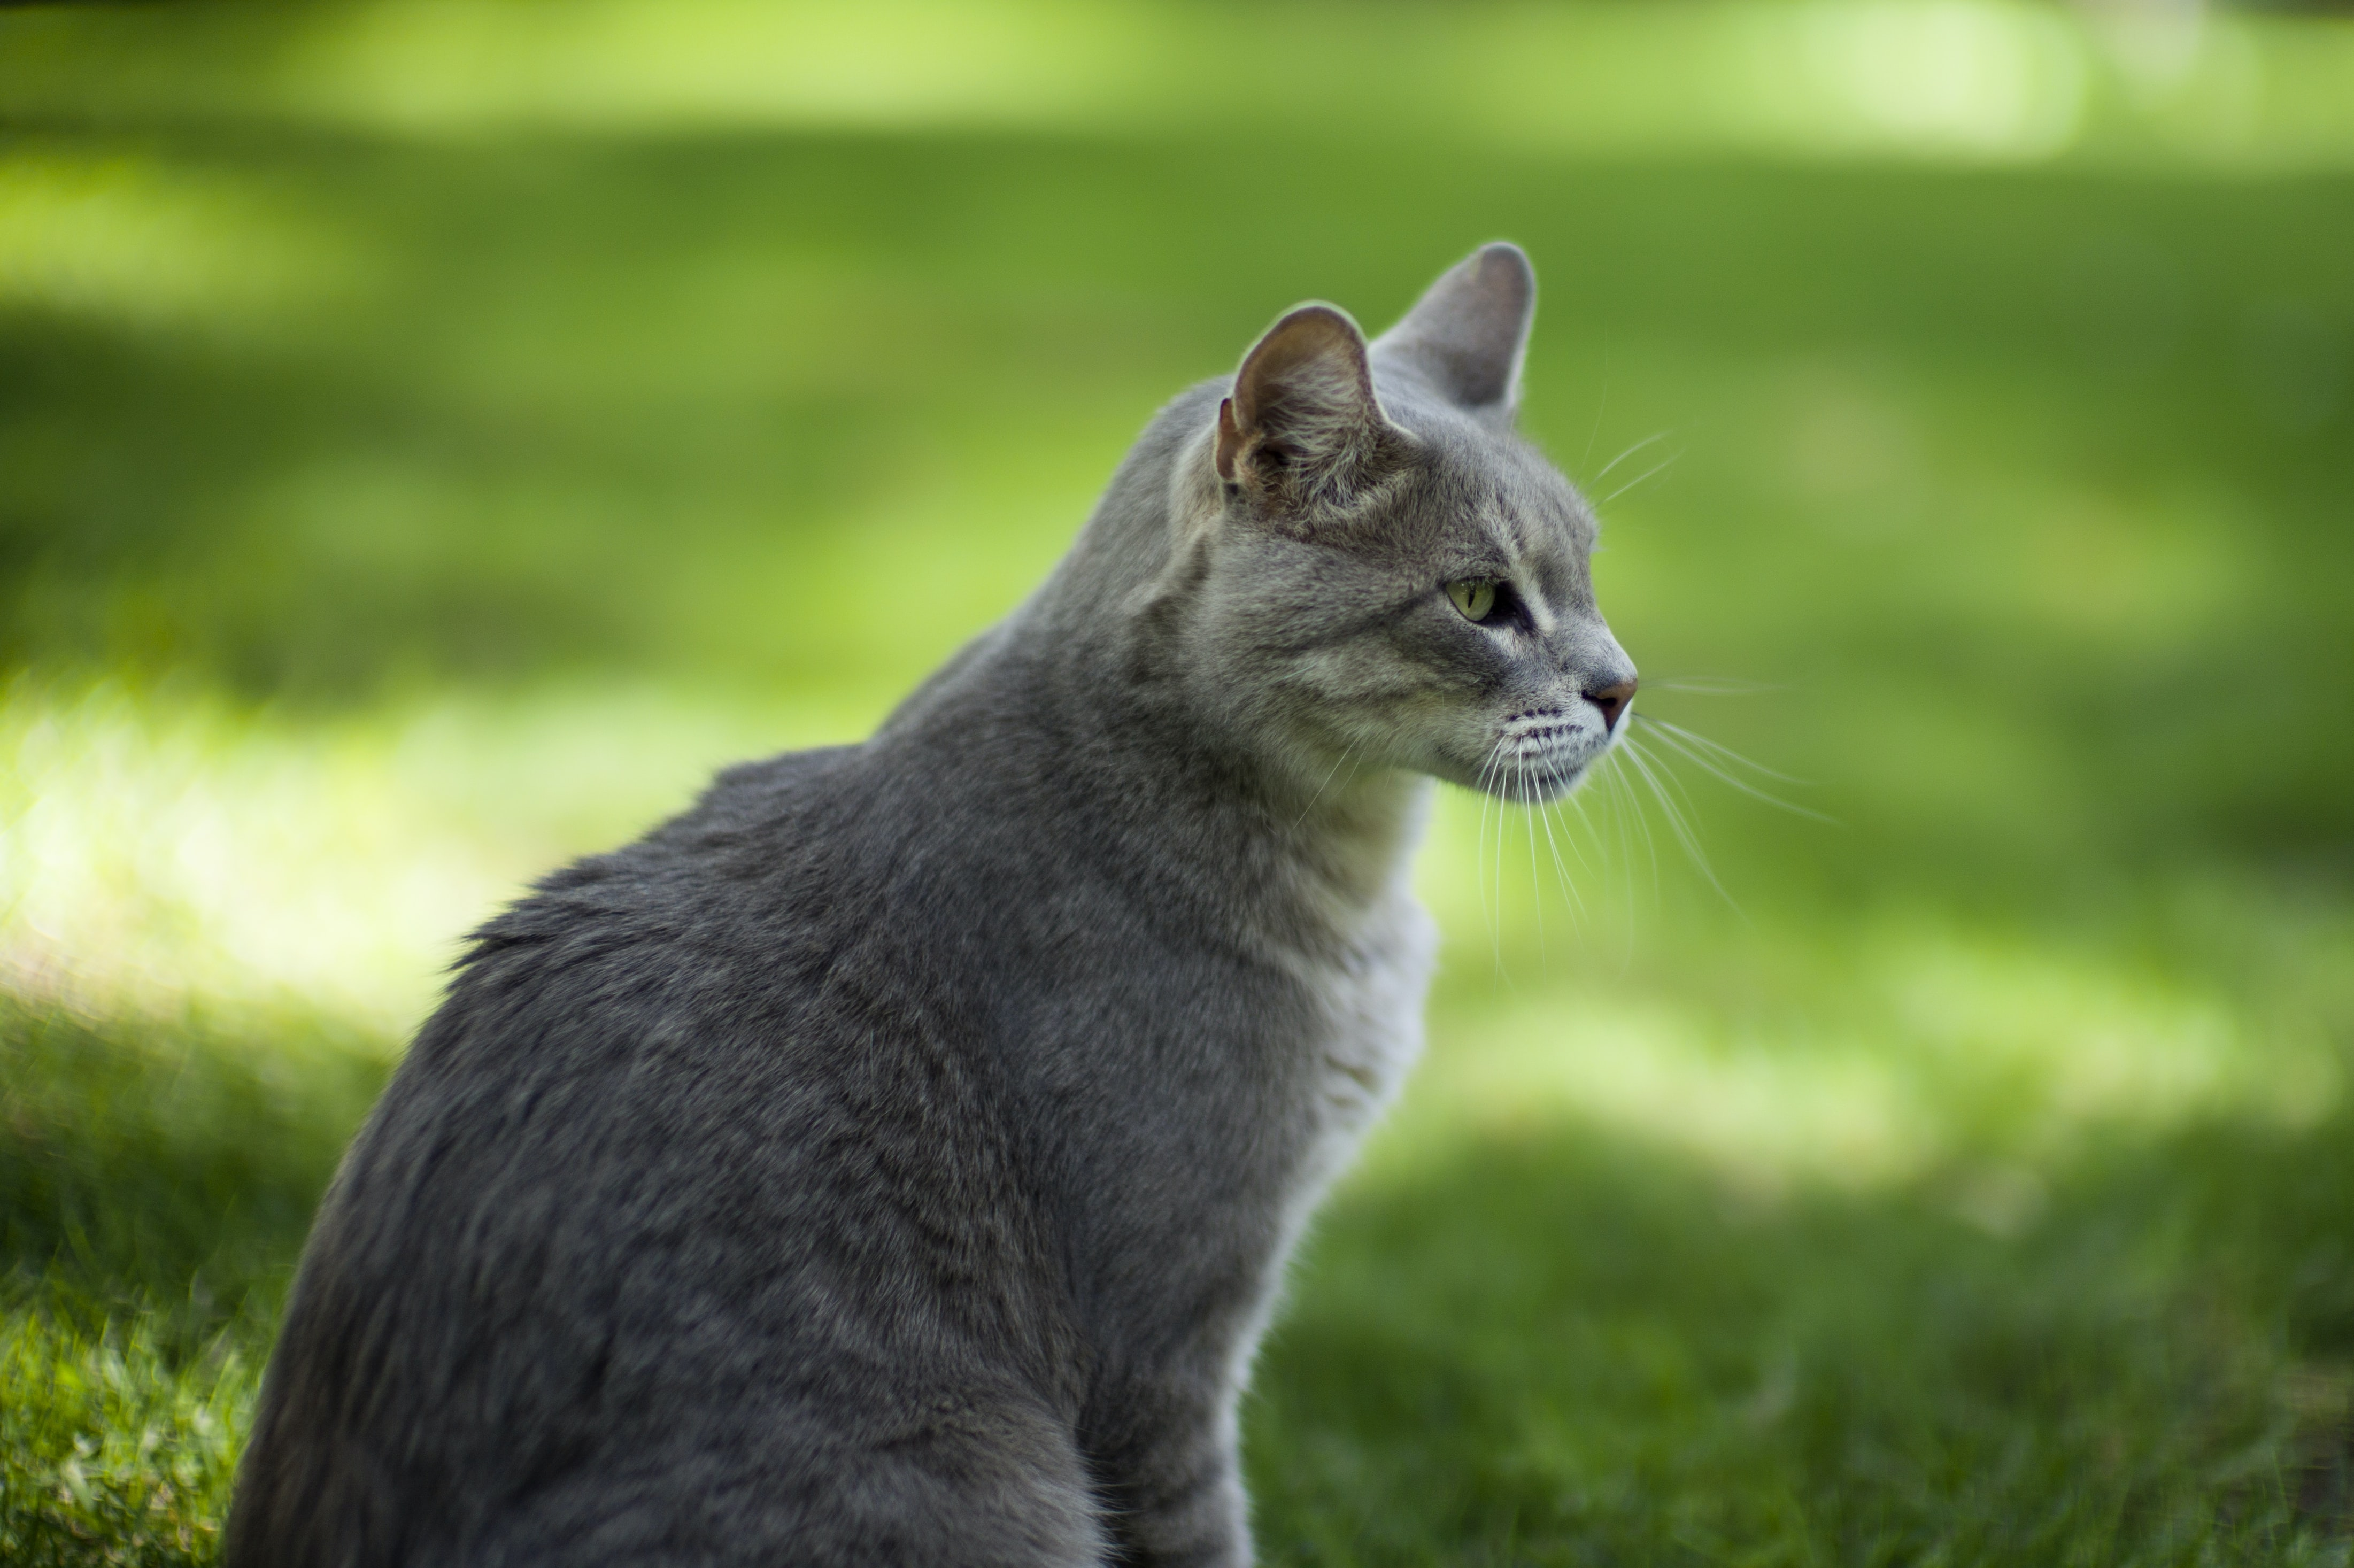 selective focus photography of silver tabby cat standing on grass field